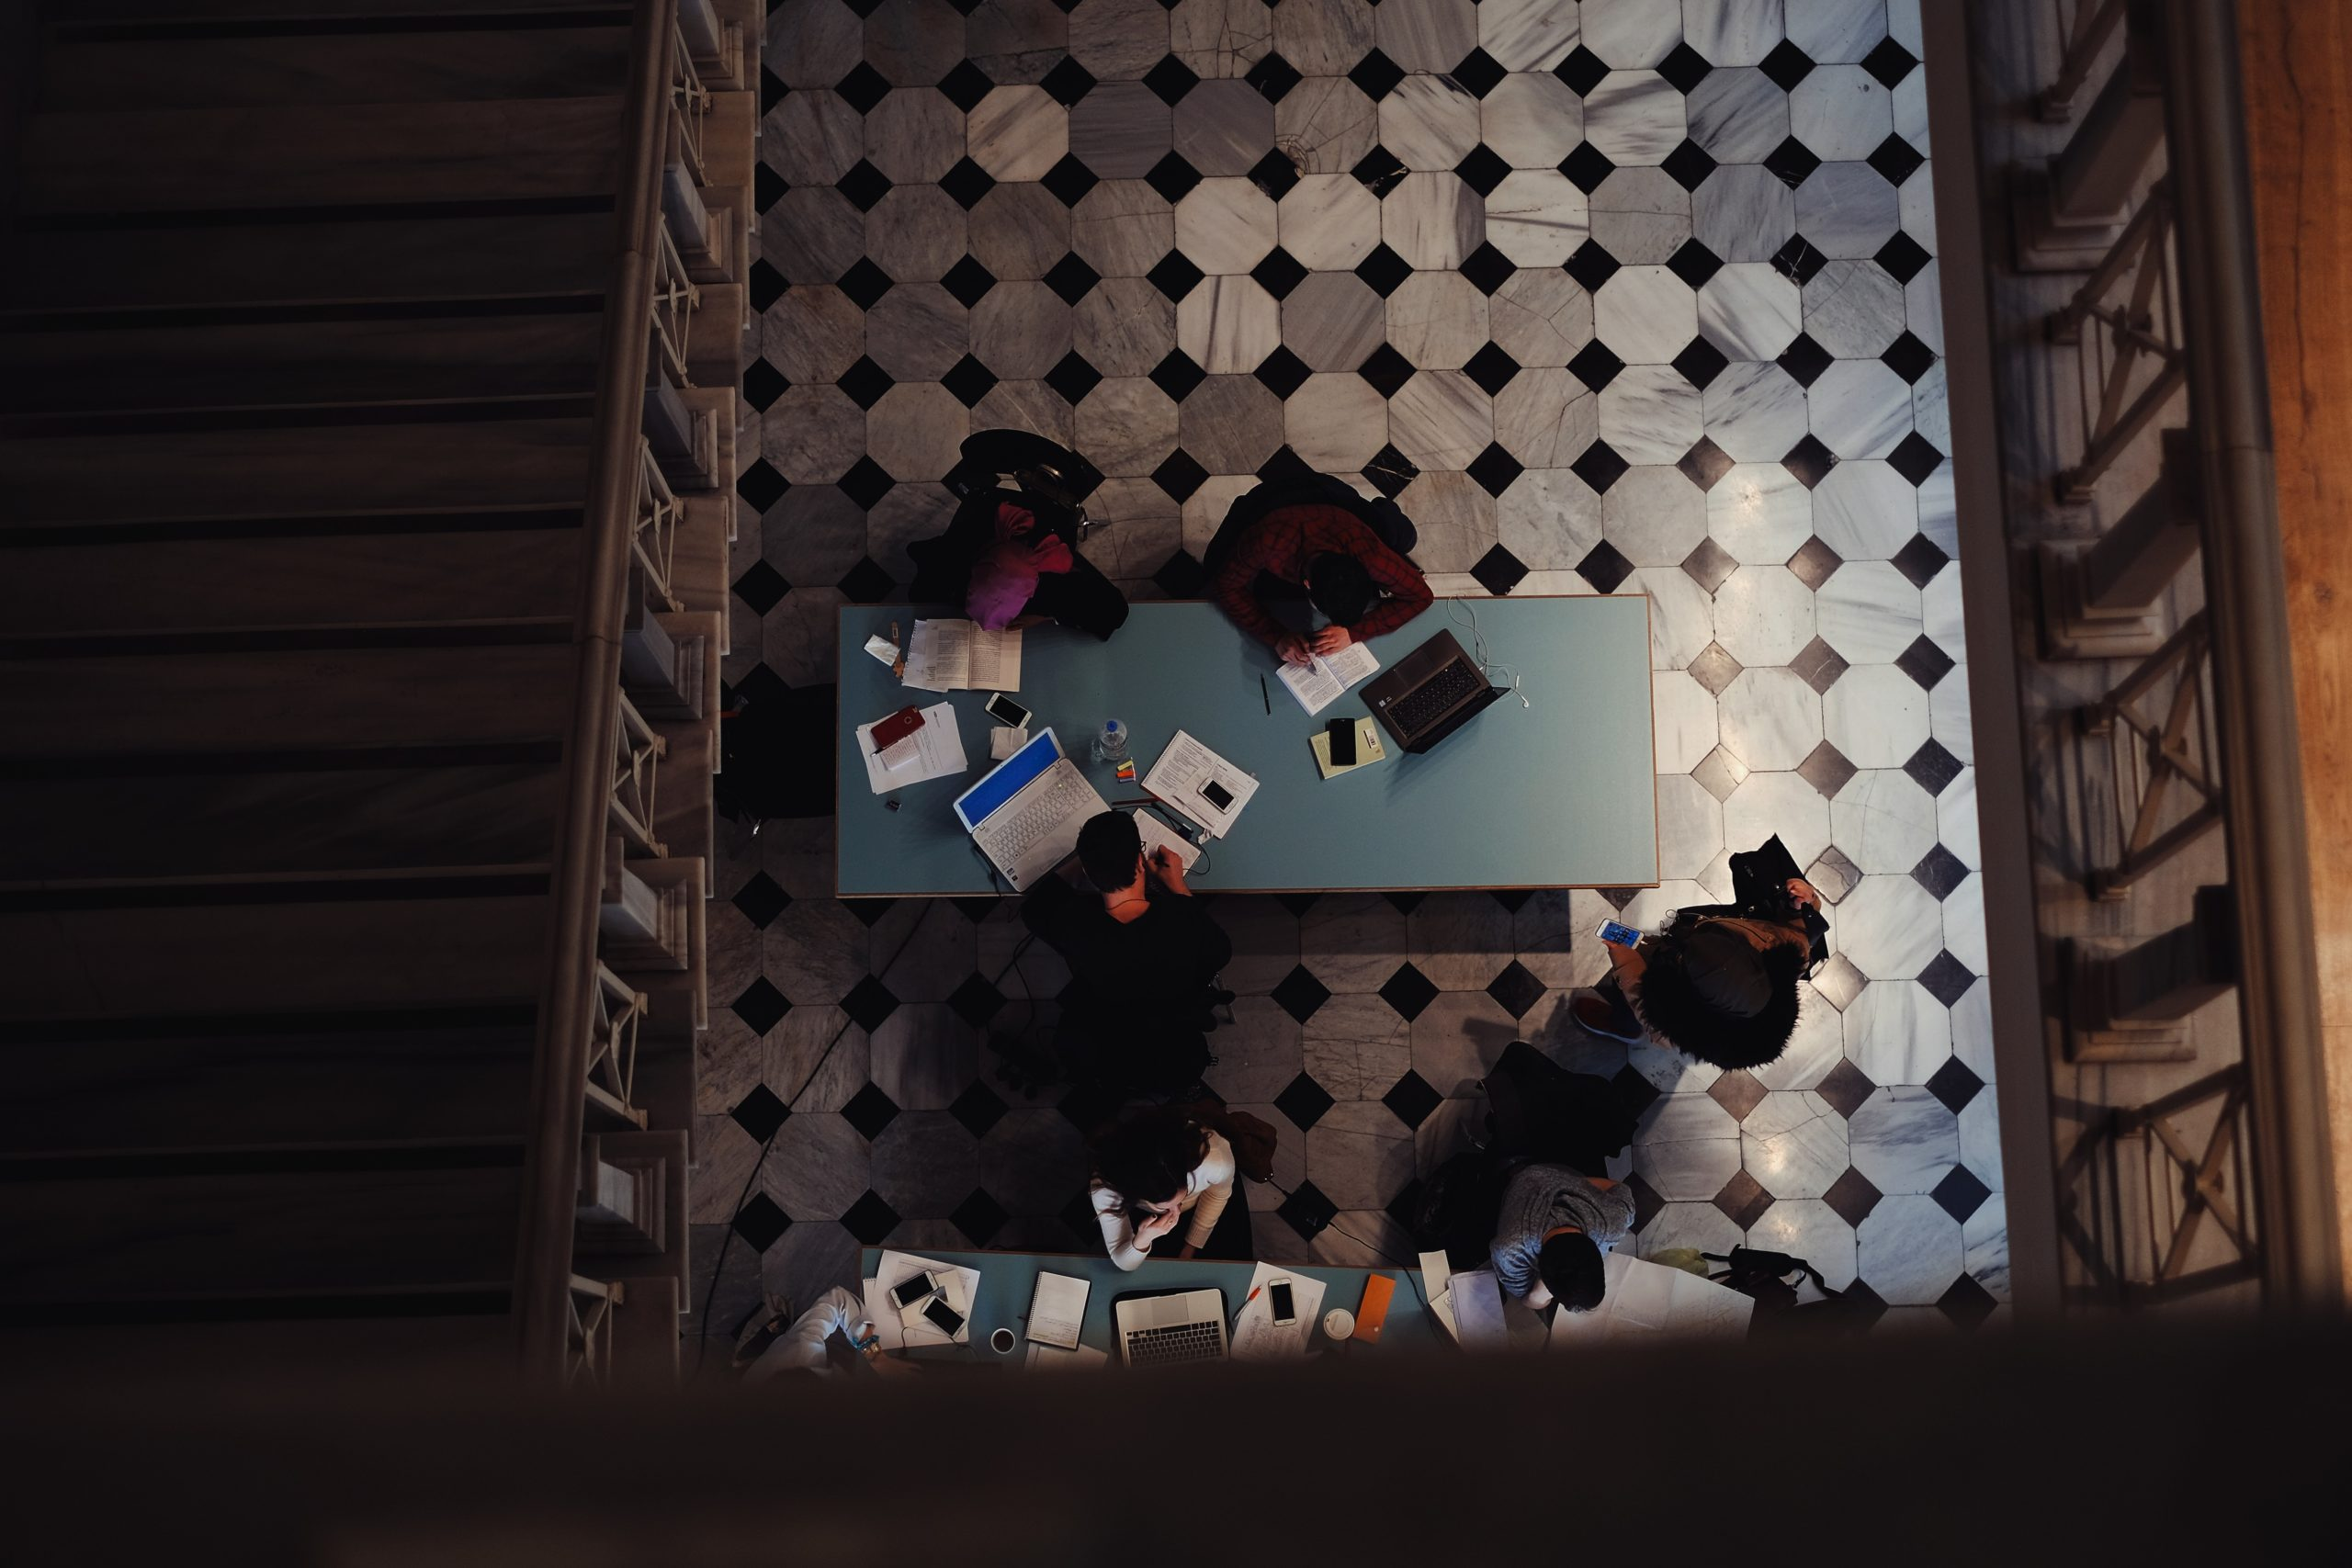 Students sitting at a table working.